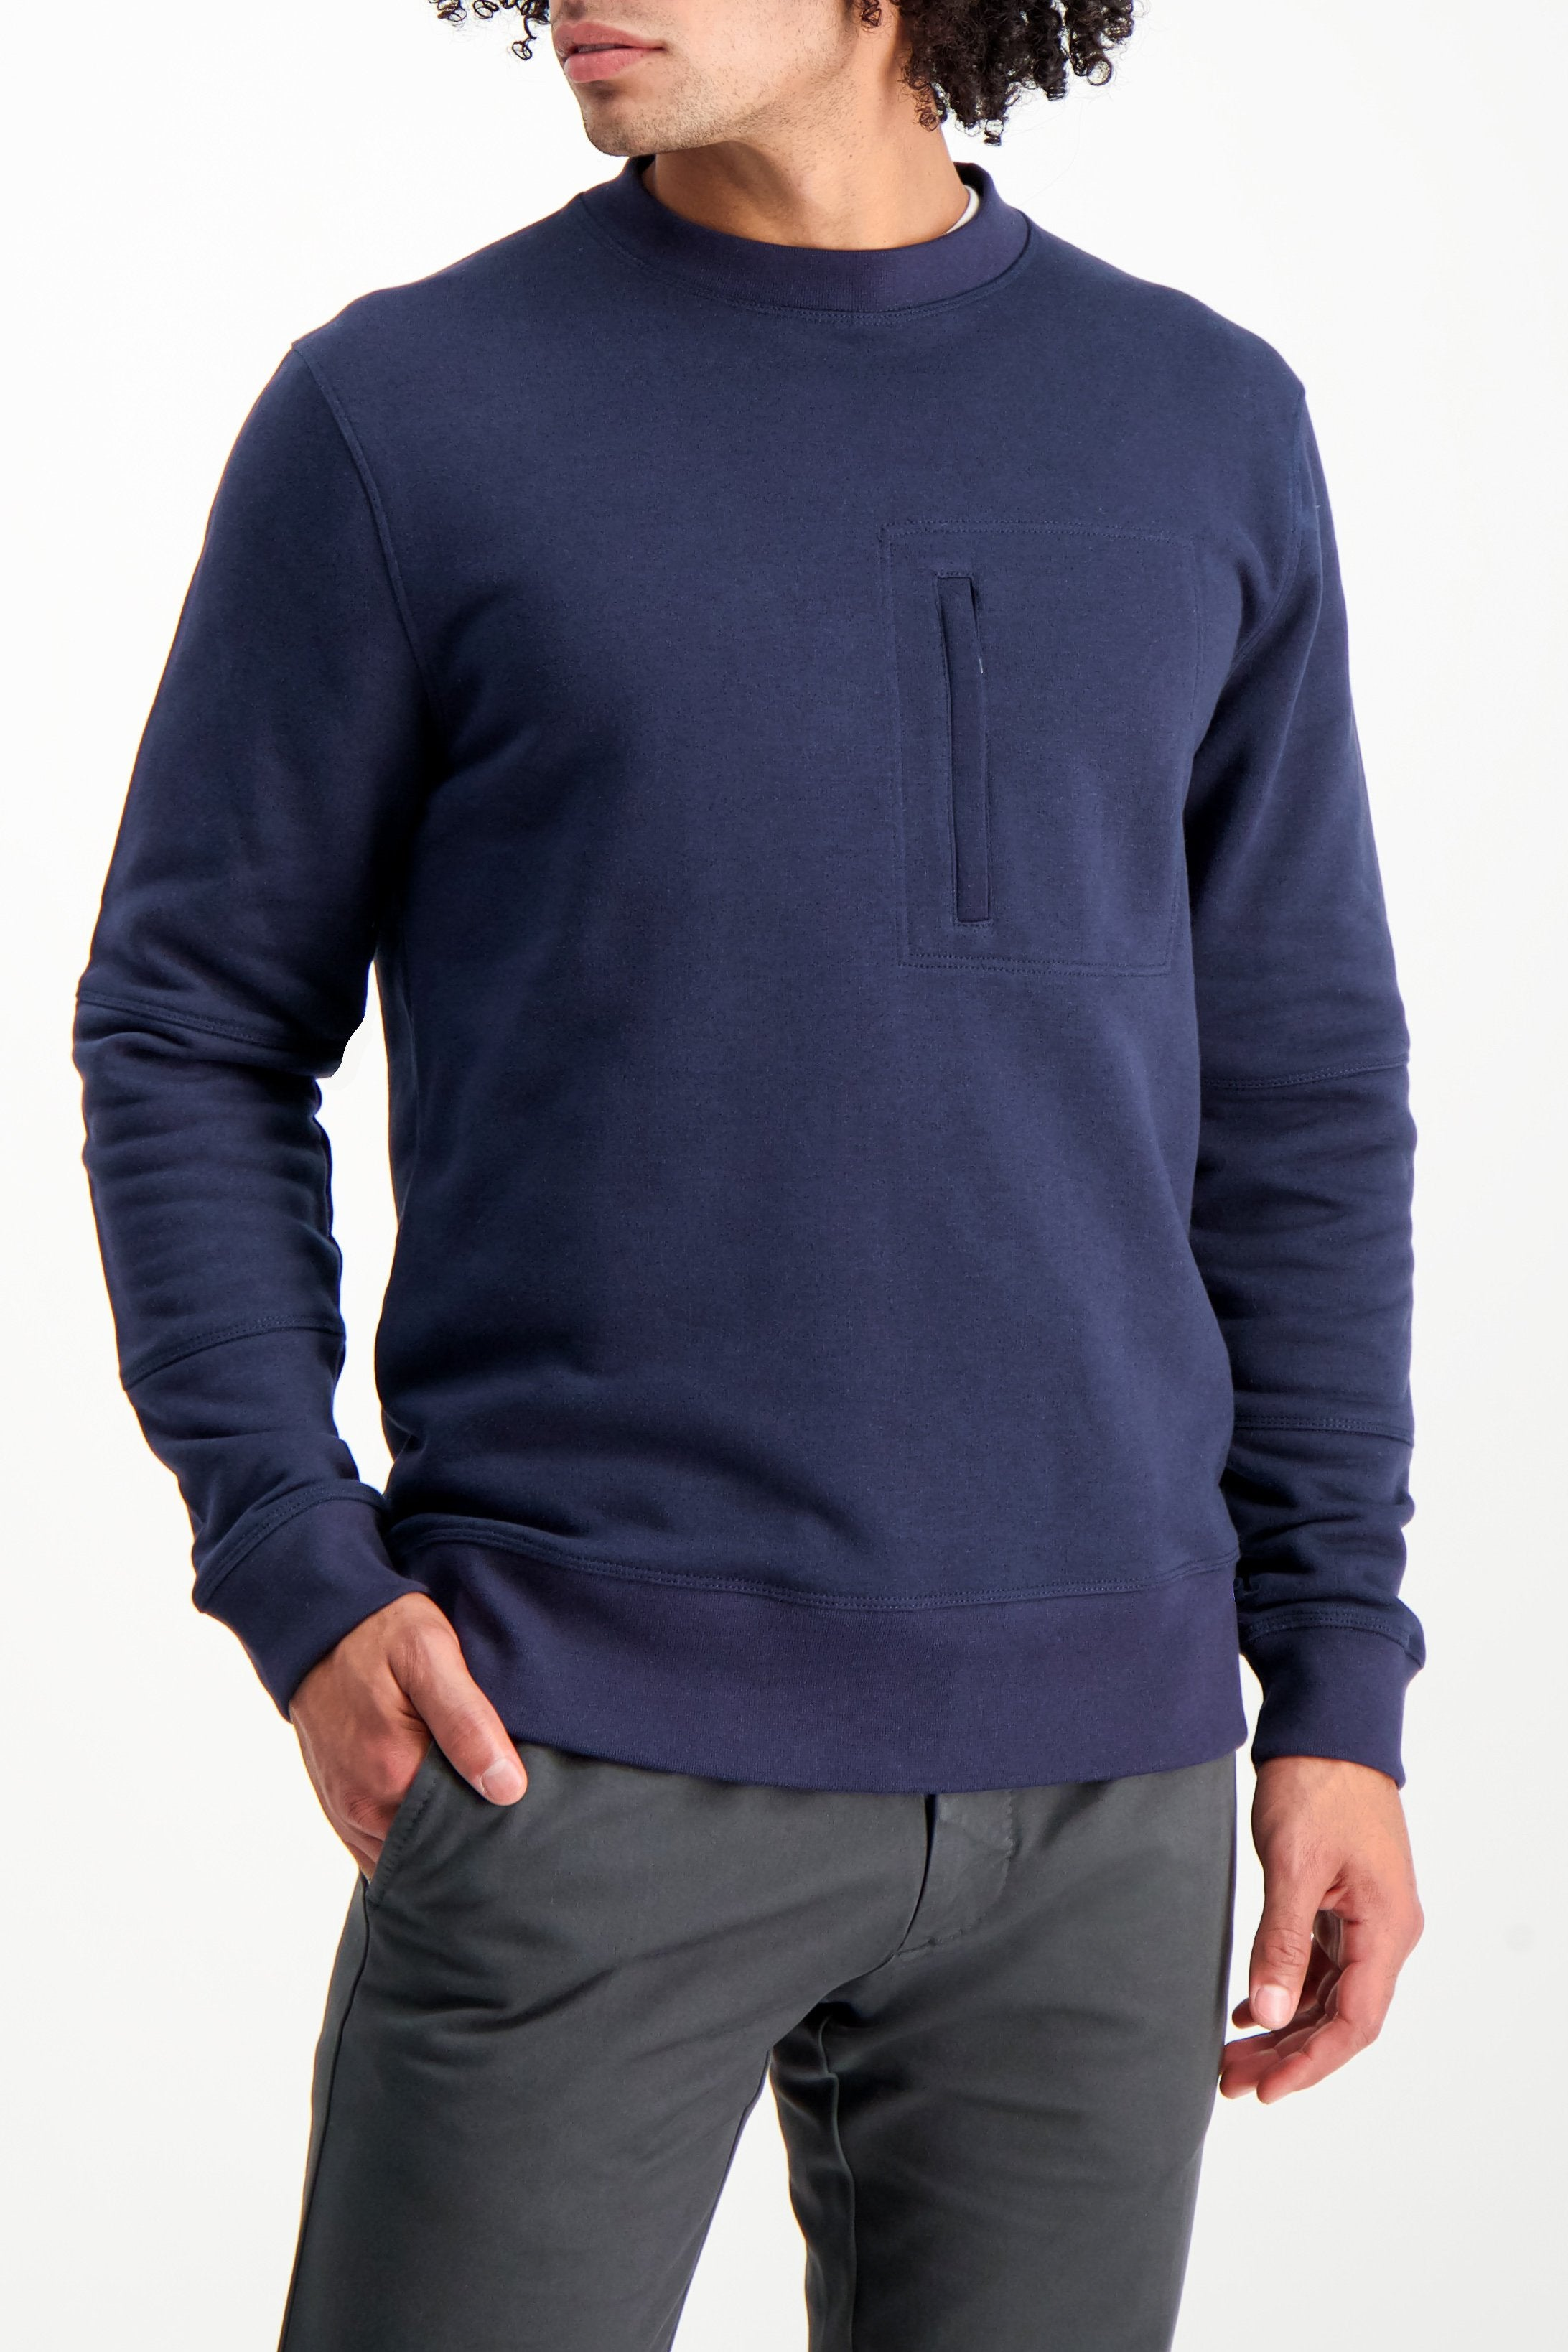 Front Crop Image OF Model Wearing Larry Sweatshirt Navy